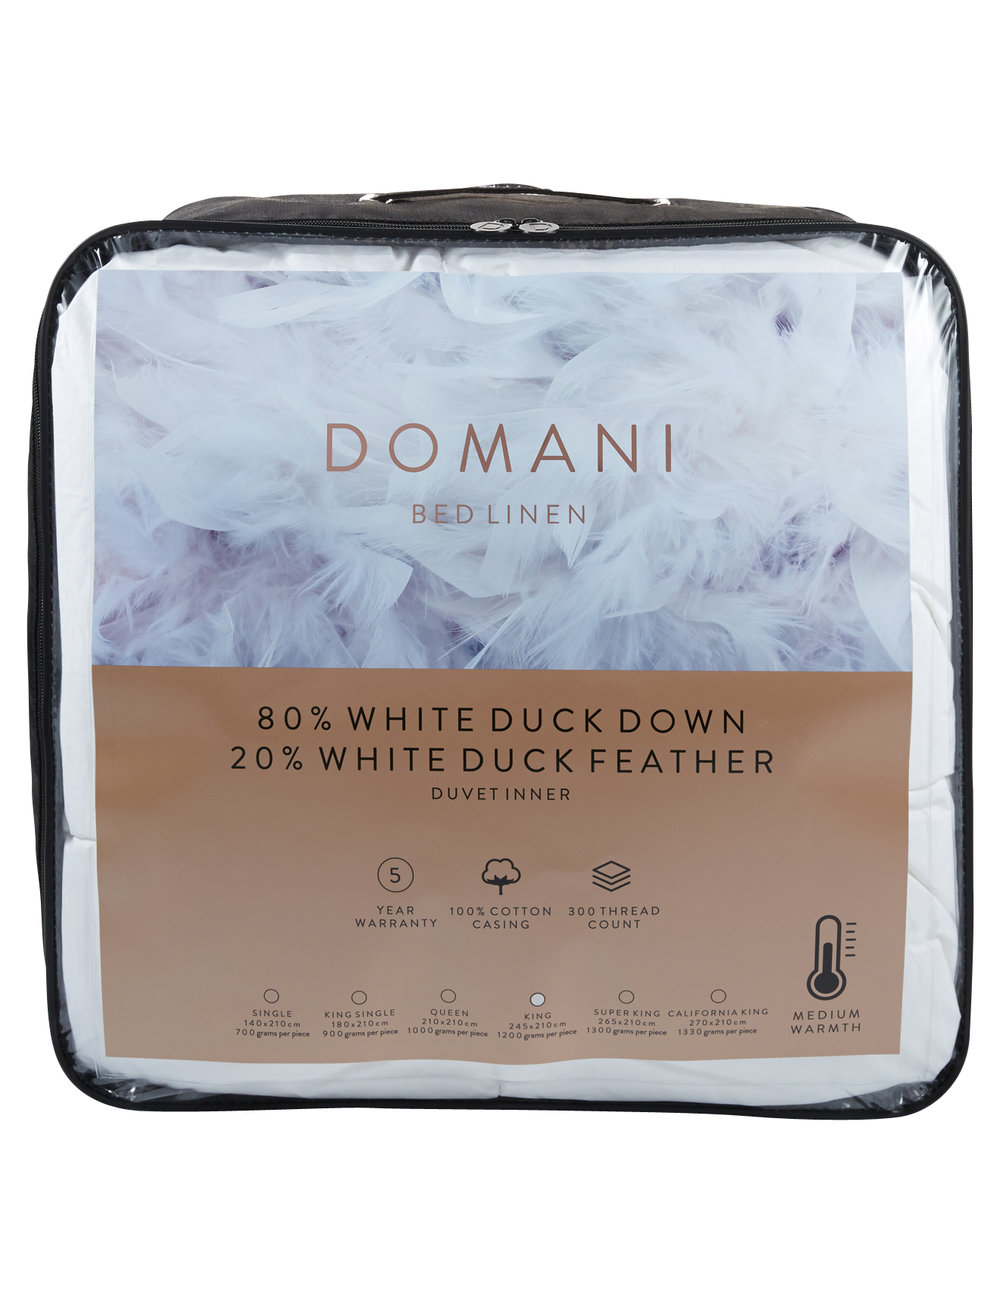 80:20 Duck Down & Feather Duvet Inner.jpg